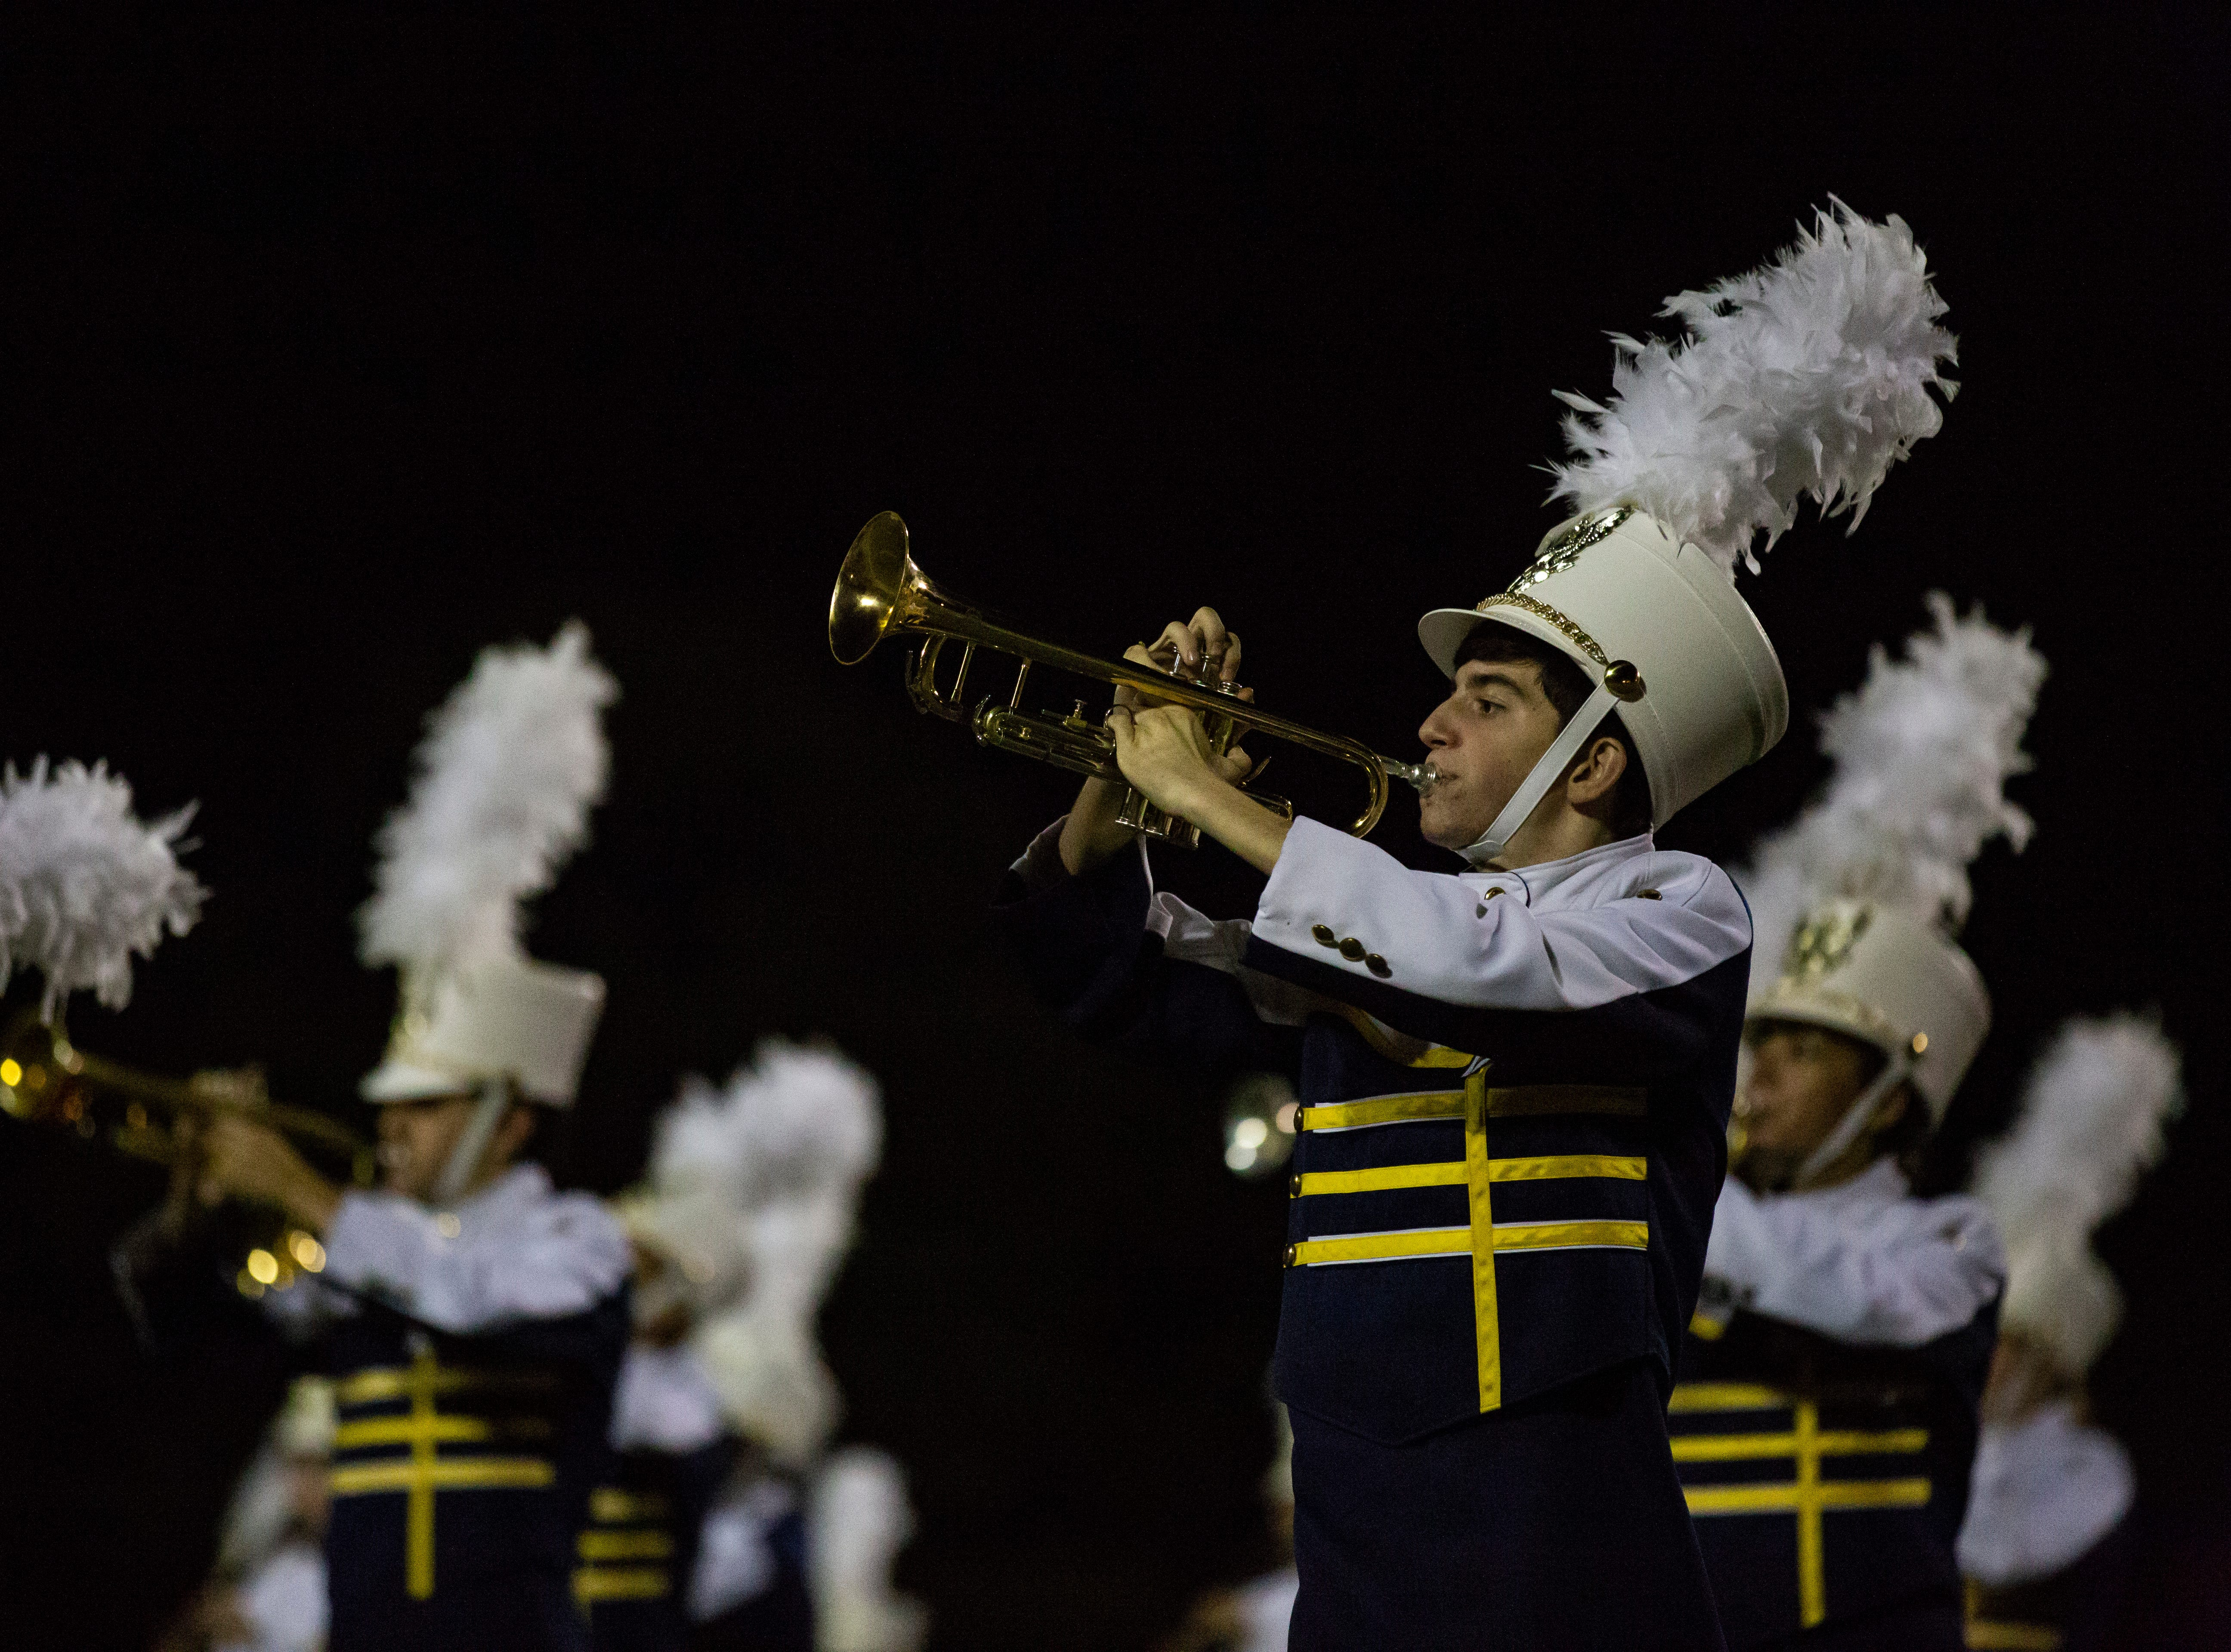 The Naples High School marching band performs during the halftime at the Class 6A state semifinals game on Friday, November 30, 2018, at Naples High School in Naples.